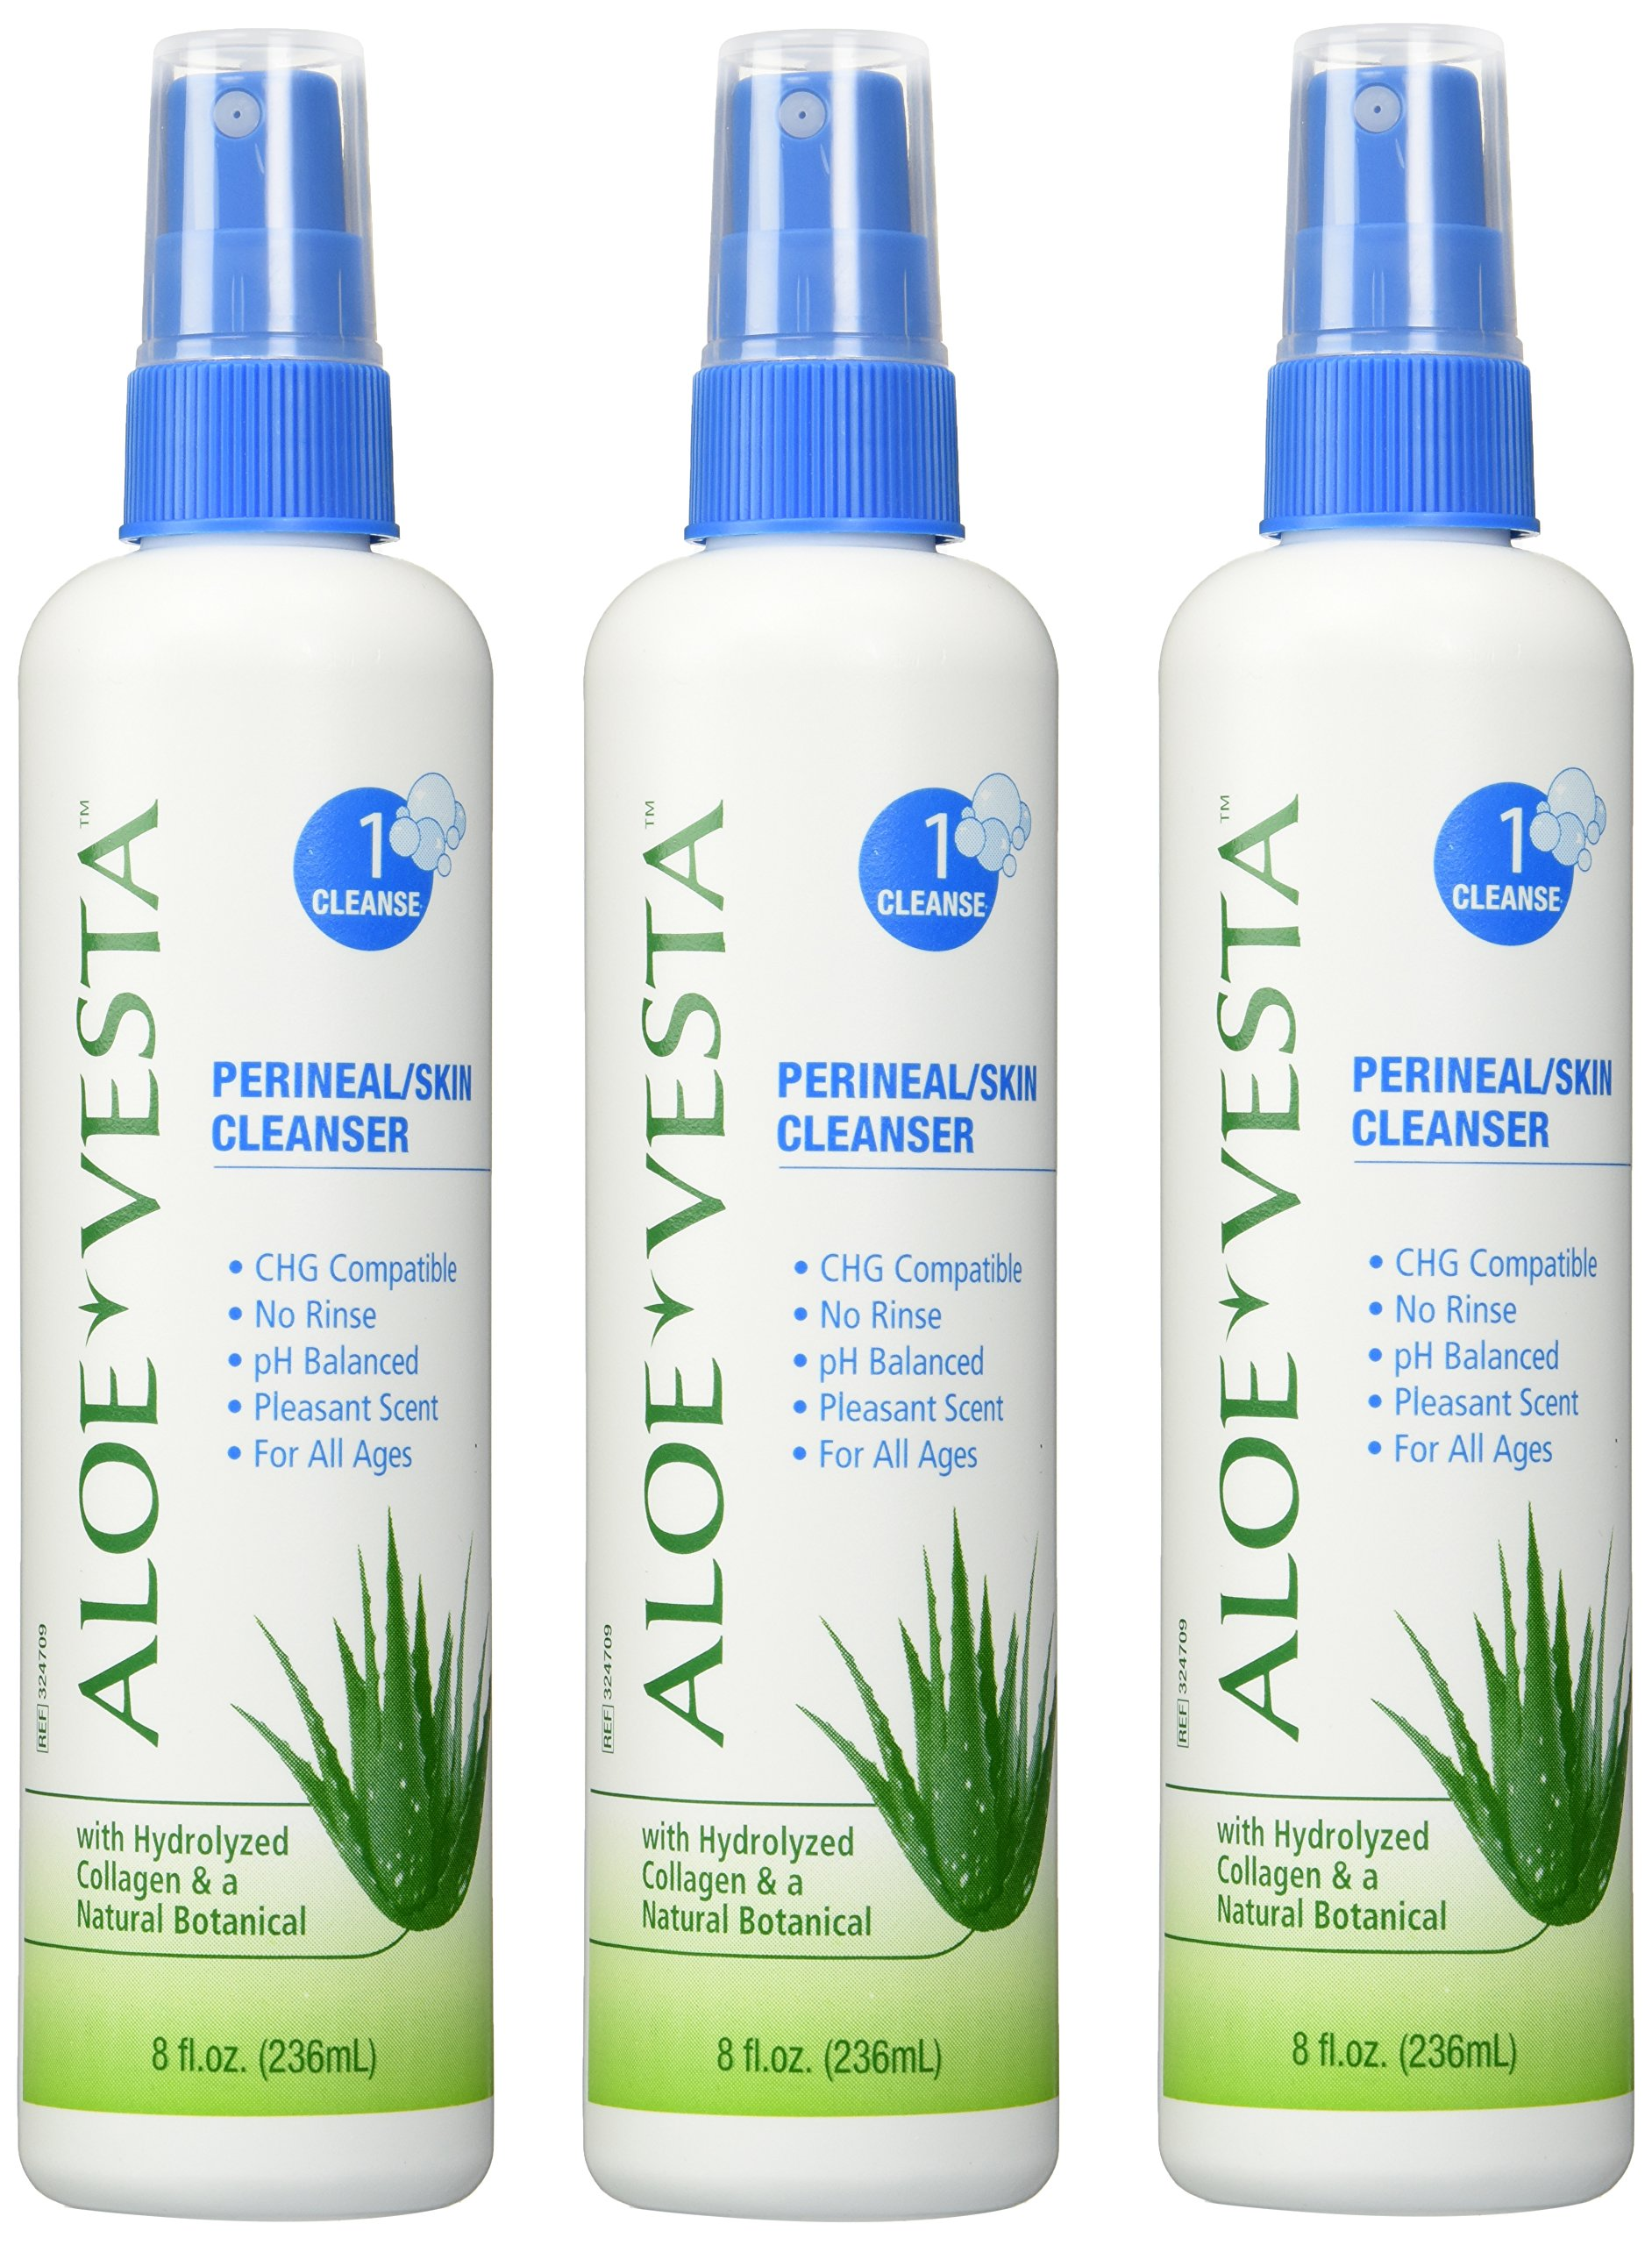 Aloe Vesta® Perineal/Skin Cleanser, 8 oz Bottle - Pack of 3